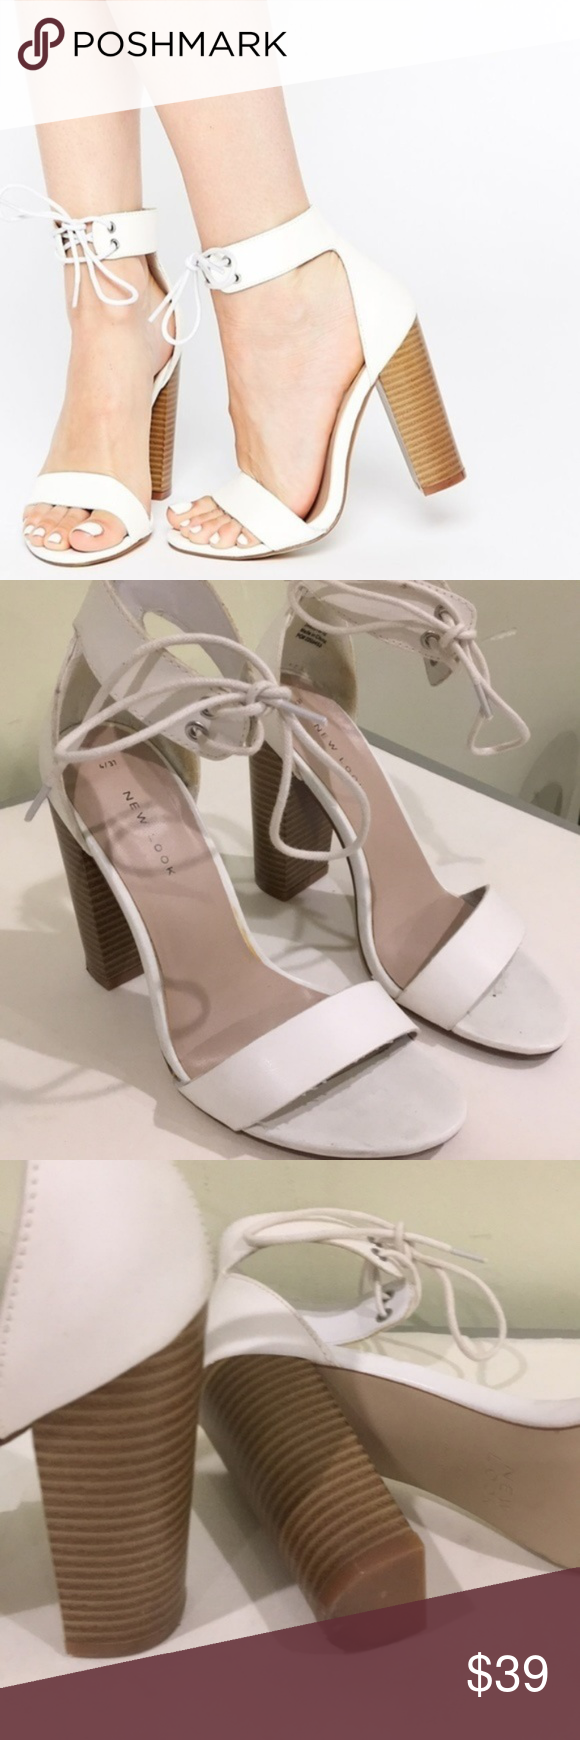 9dc7c4ca35 ASOS New Look White Block Heel Lace Up Sandal Sz 7 ASOS New Look White Block  Heel Lace Up Sandal Sz 7 In great used condition. Minimally worn.